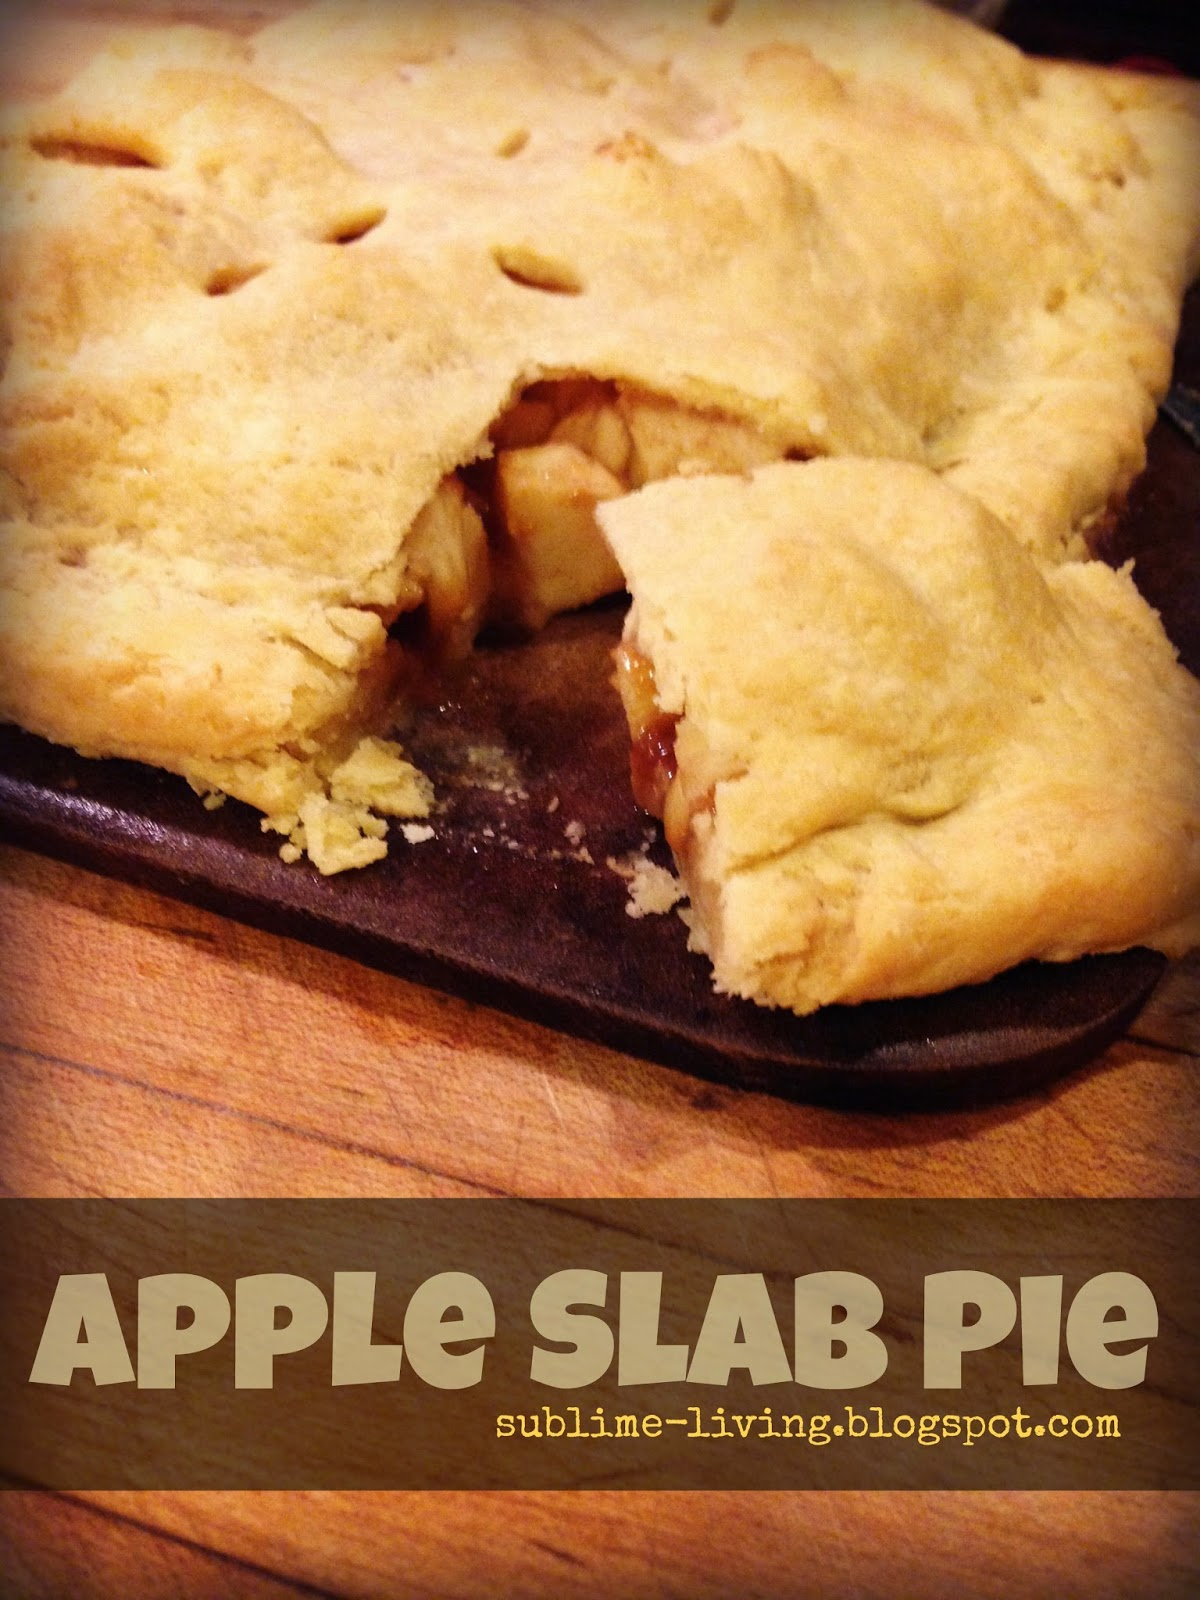 ... Salted Caramel Apple Pie Slab Recipe with Perfectly Rustic Pie Crust